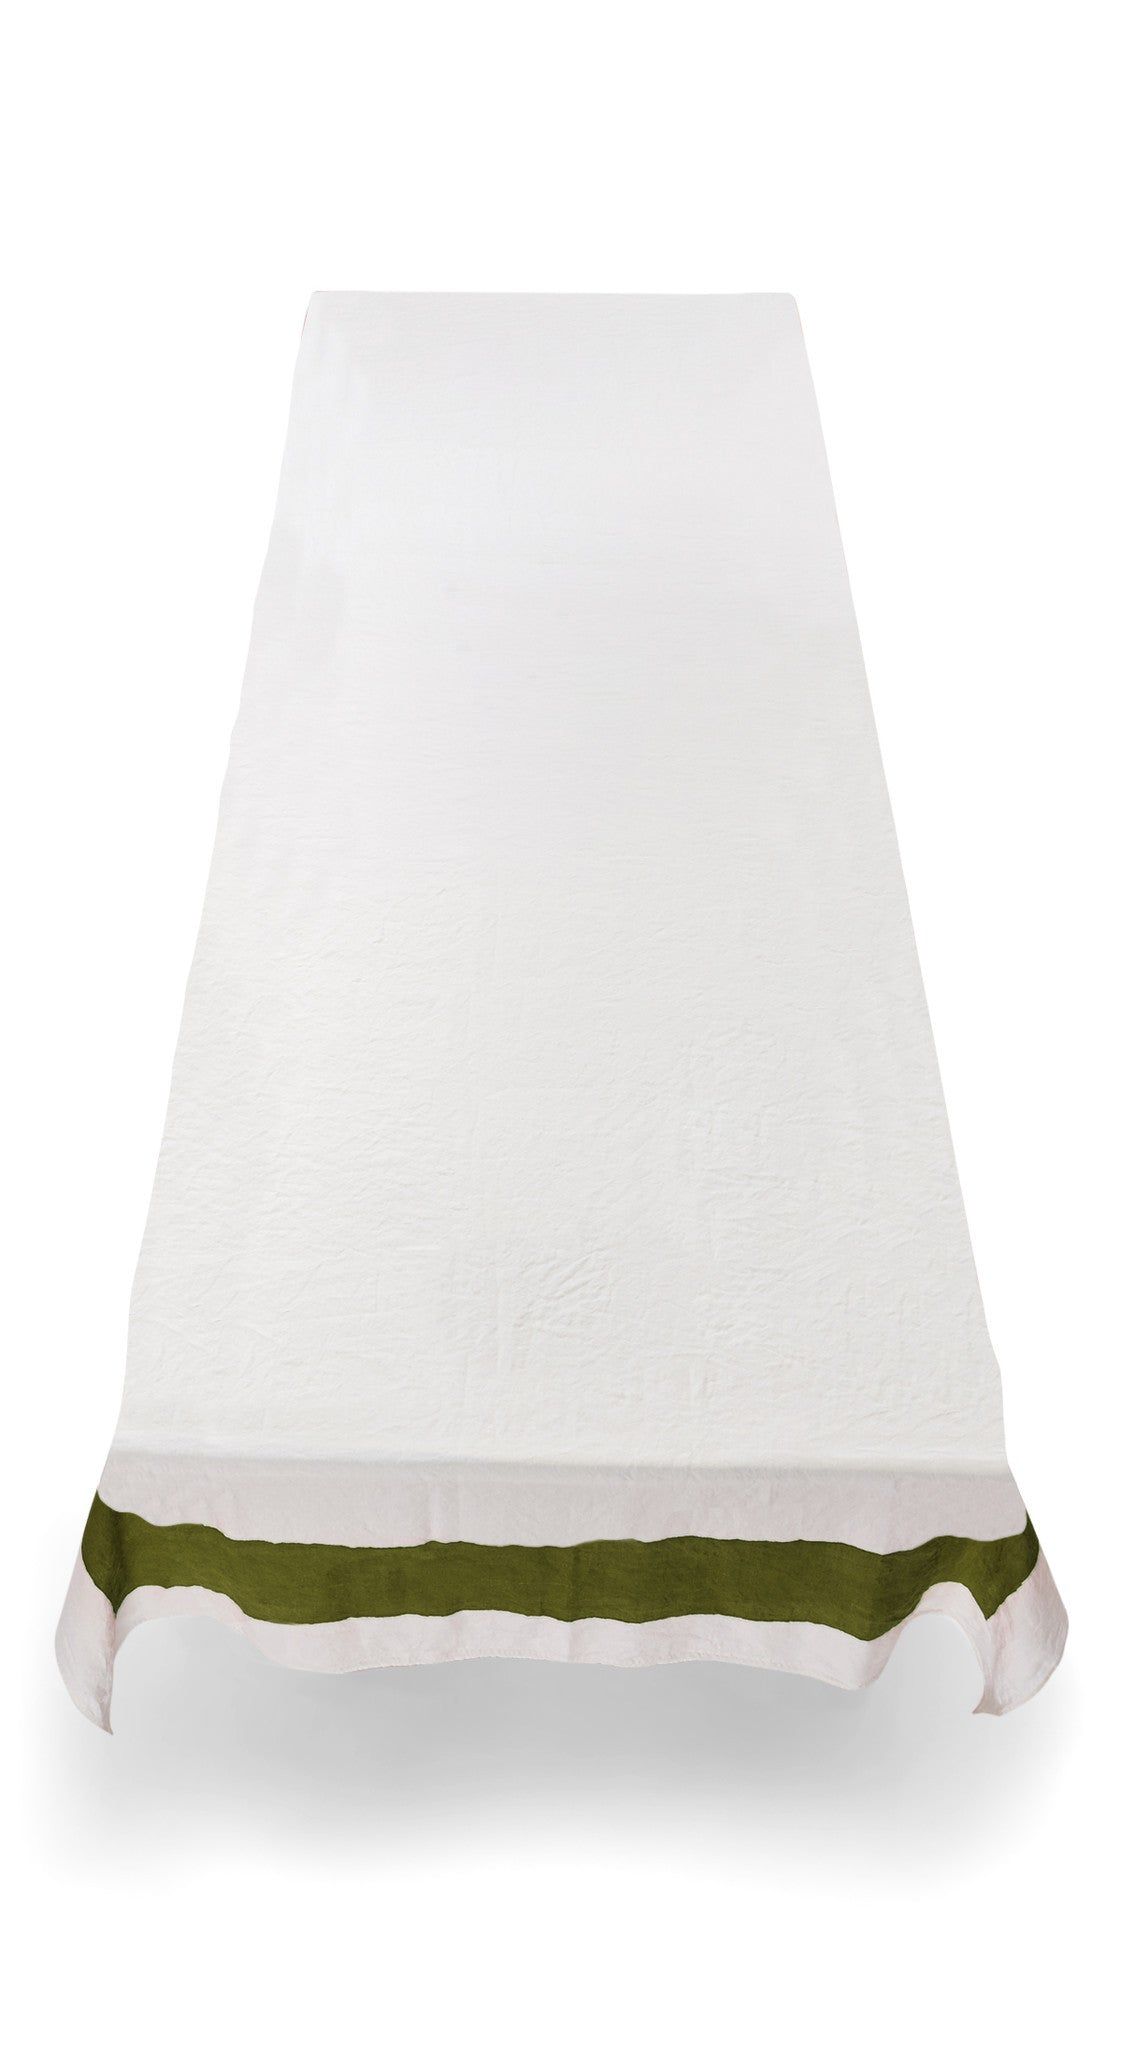 Cornice Linen Tablecloth in Avocado Green